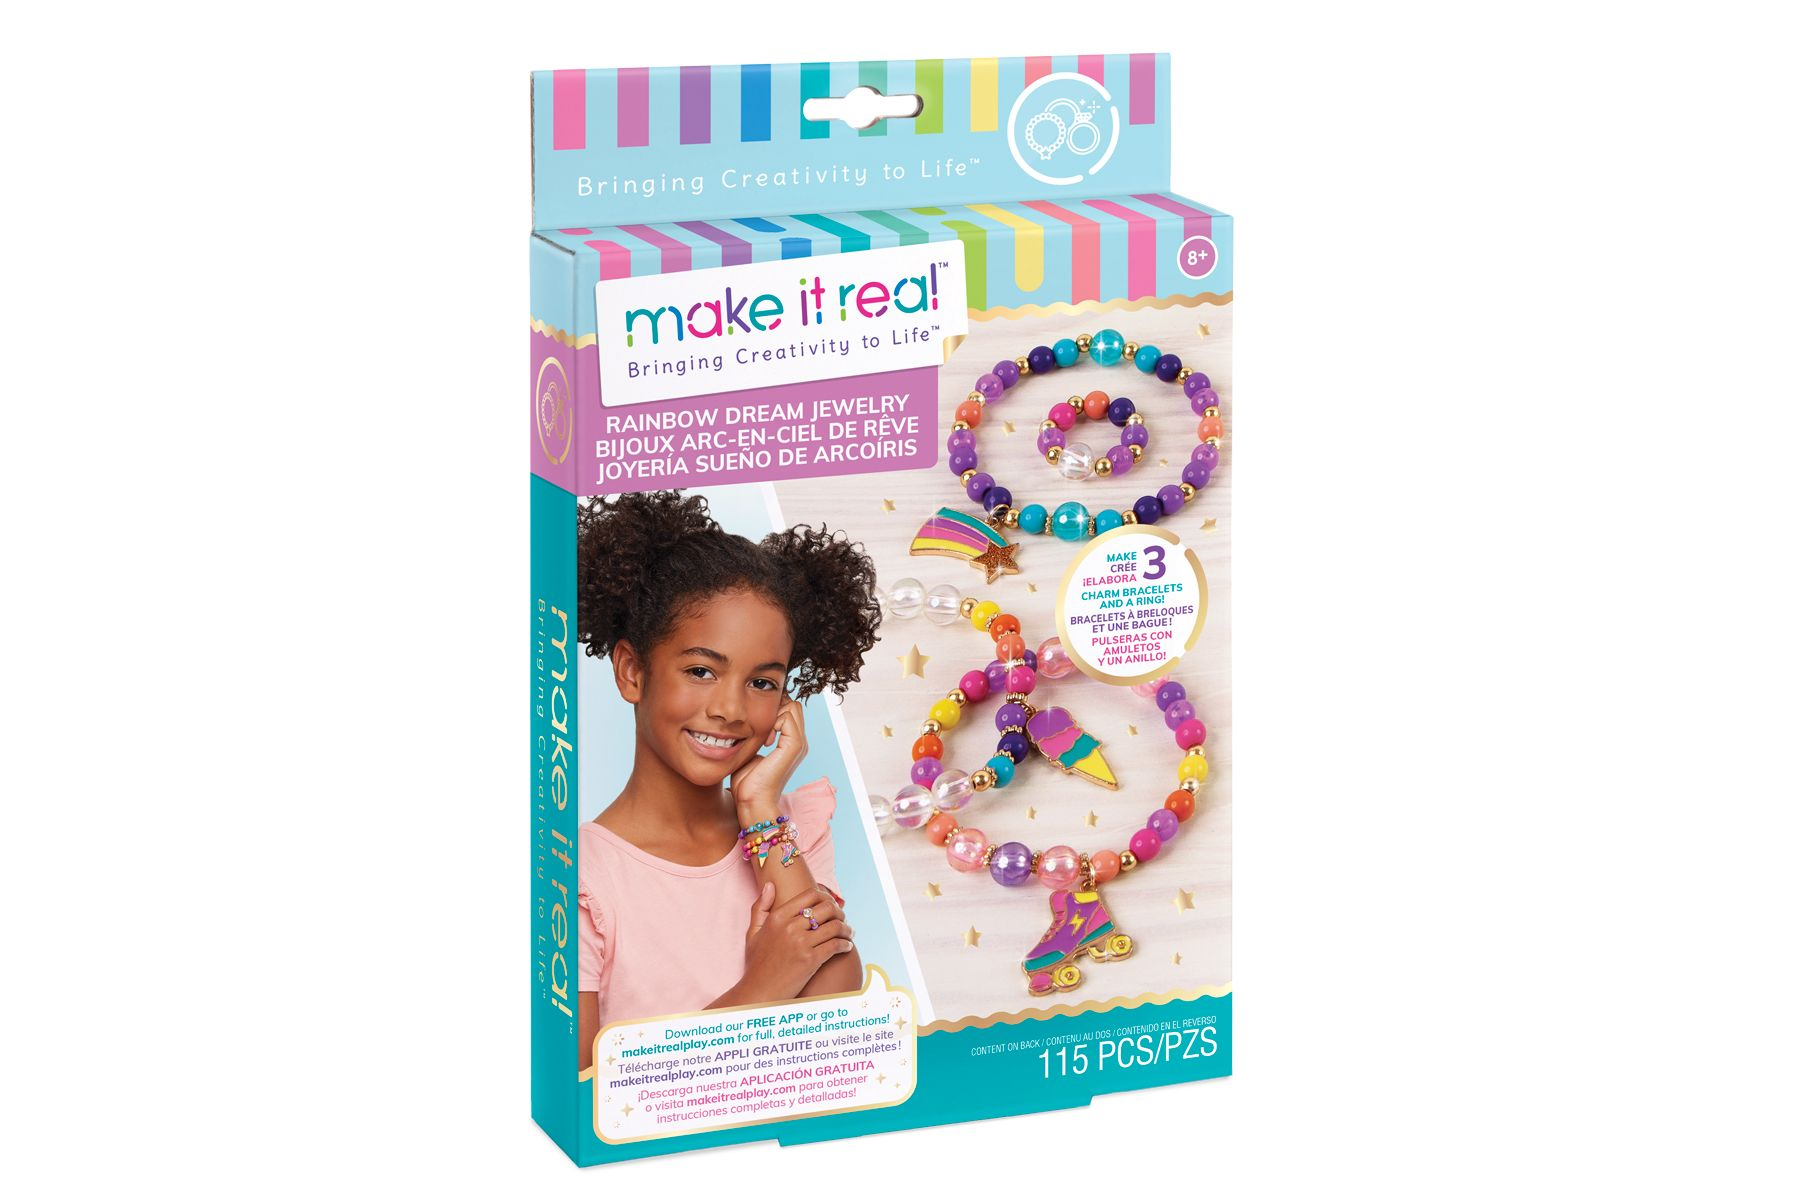 Arts and Crafts Kit Guides Kids to Create Unique Gold and Glitter Pendants for Necklaces Gold /& Glitter Accent Jewelry DIY Necklace /& Pendant Making Kit for Girls Make It Real